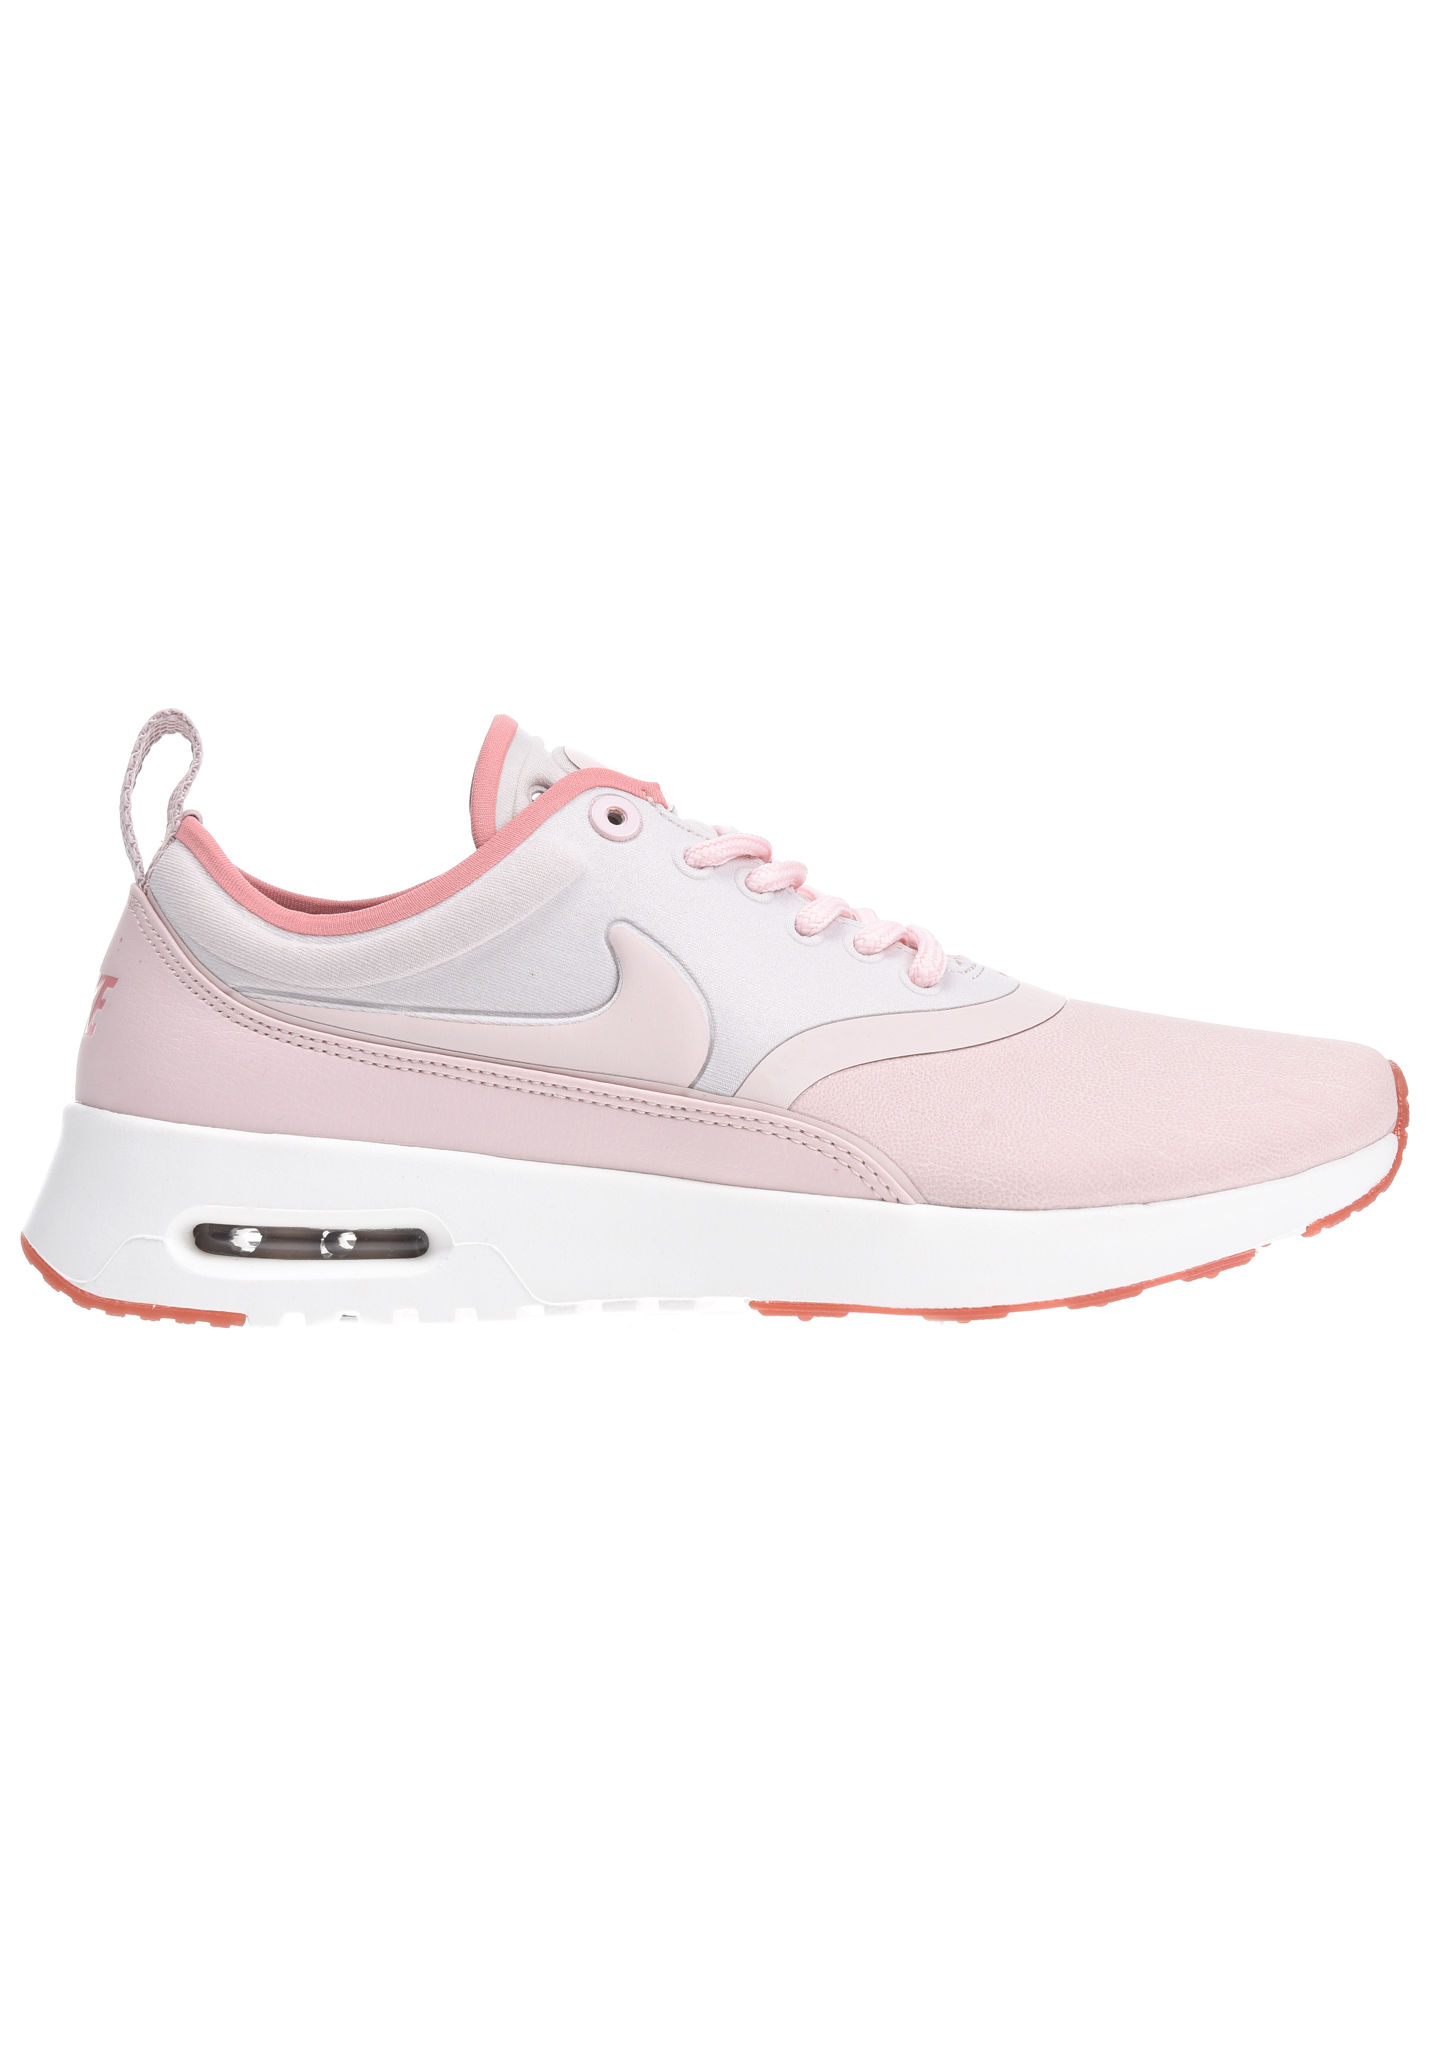 size 40 49808 47487 NIKE SPORTSWEAR Air Max Thea Ultra Premium - Baskets pour Femme - Rose -  Planet Sports